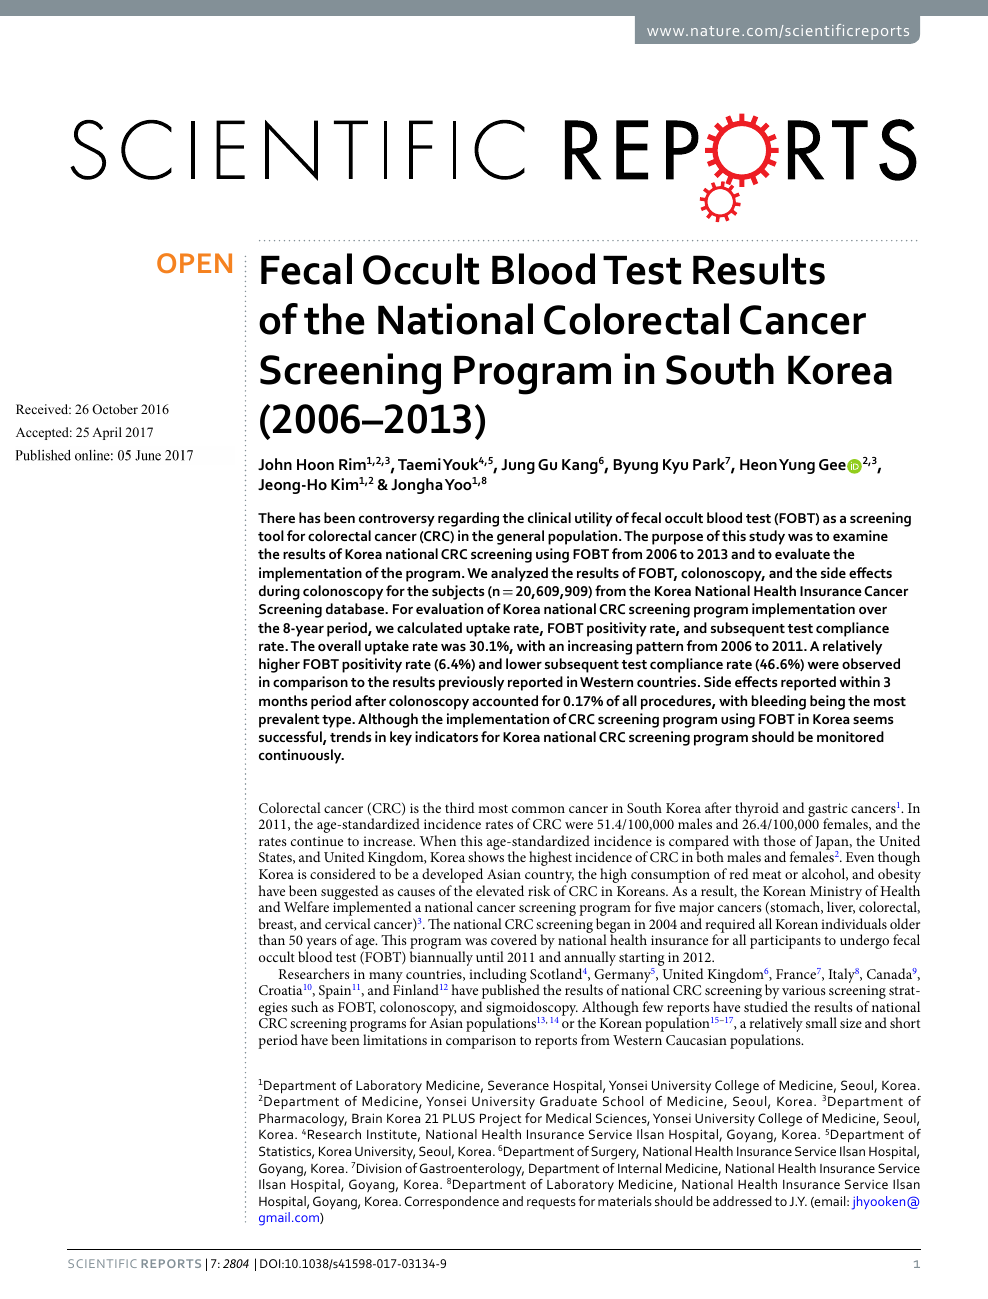 Fecal Occult Blood Test Results Of The National Colorectal Cancer Screening Program In South Korea 2006 2013 Topic Of Research Paper In Health Sciences Download Scholarly Article Pdf And Read For Free